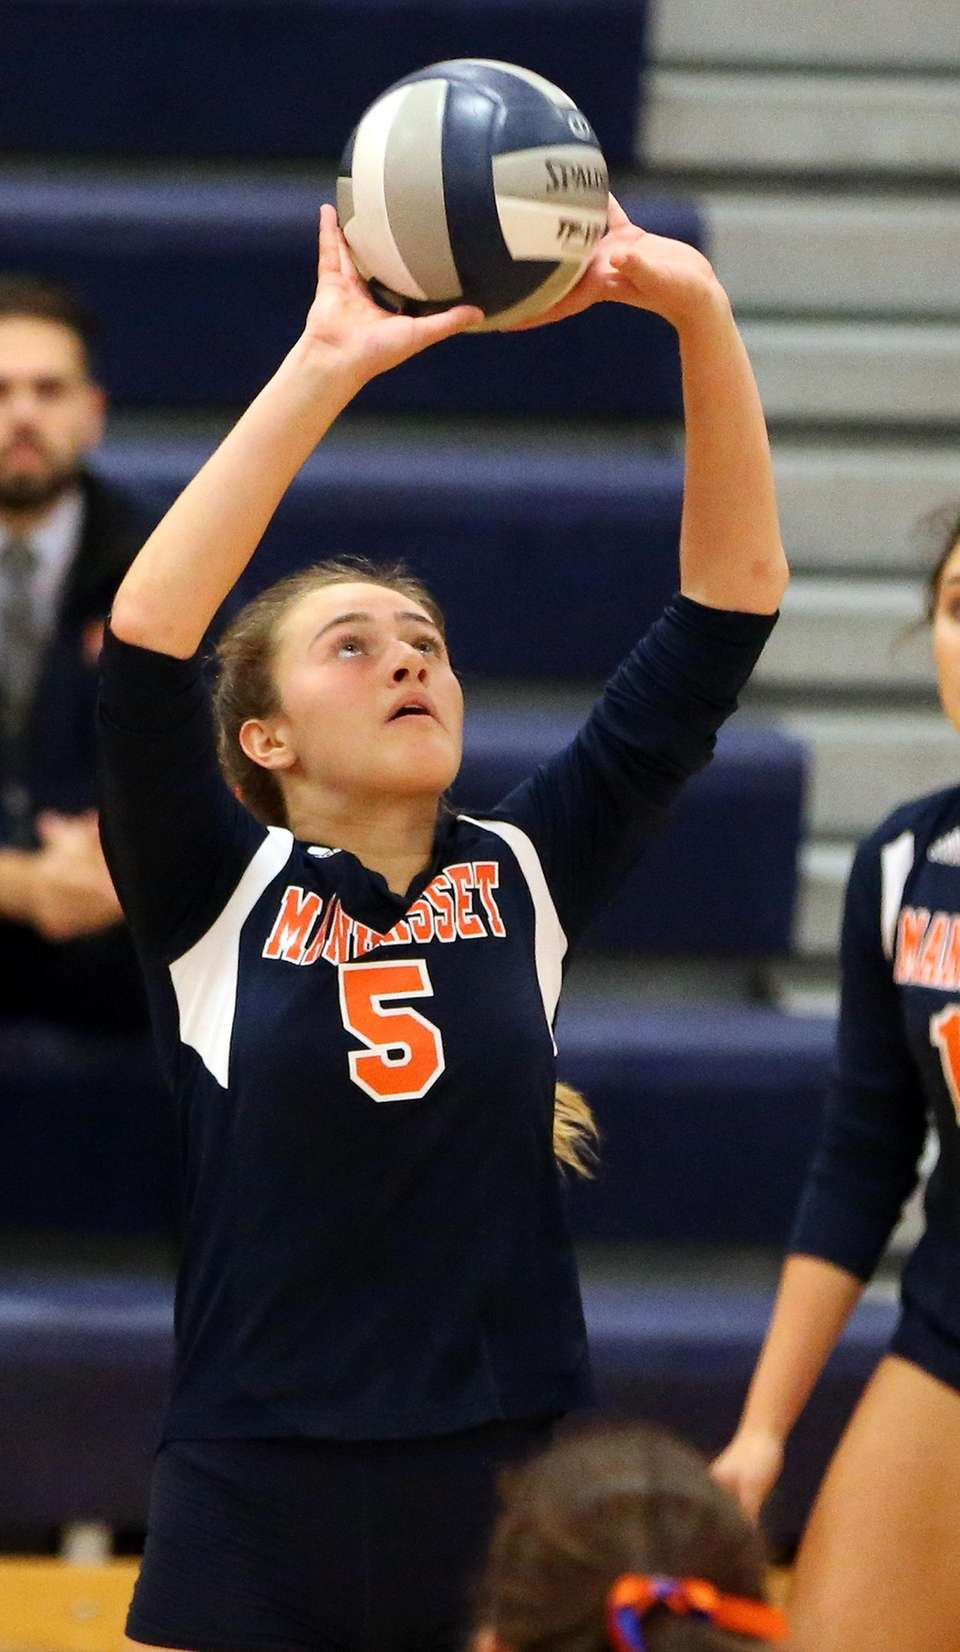 Manhasset's Isabella Pirone sets the ball during a